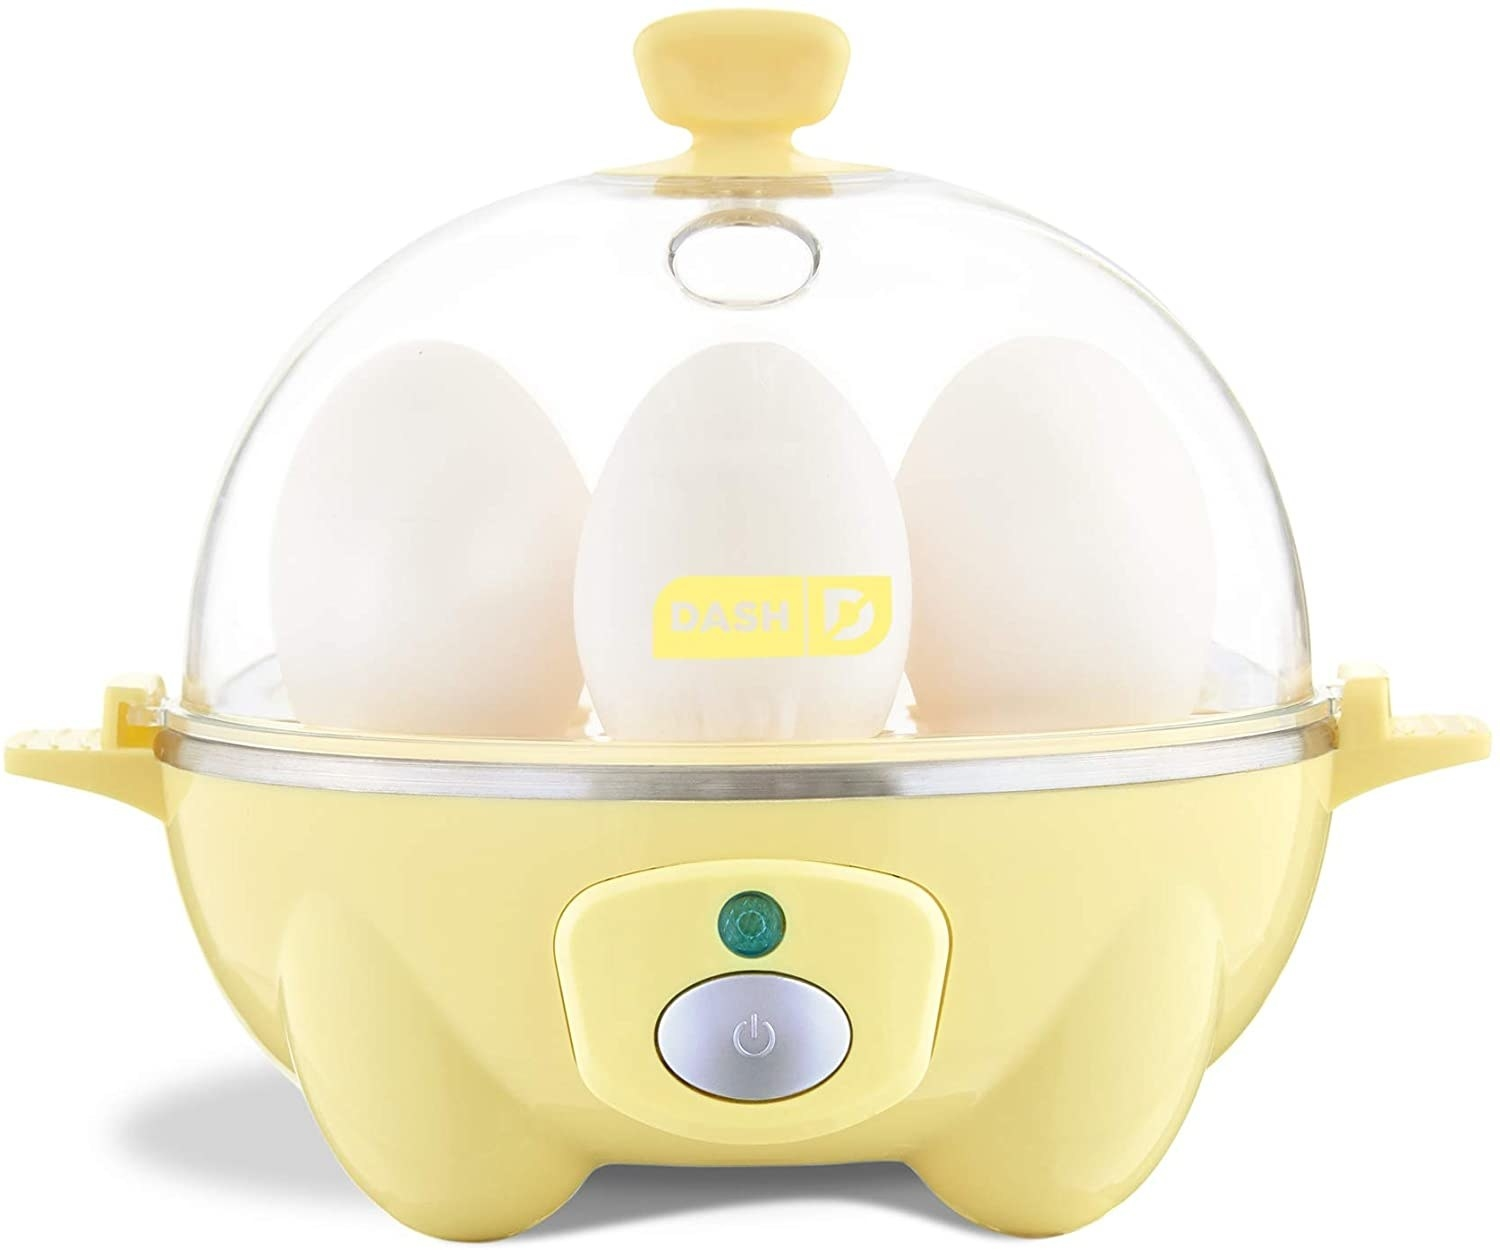 Pale yellow egg cooker isolated on a white background